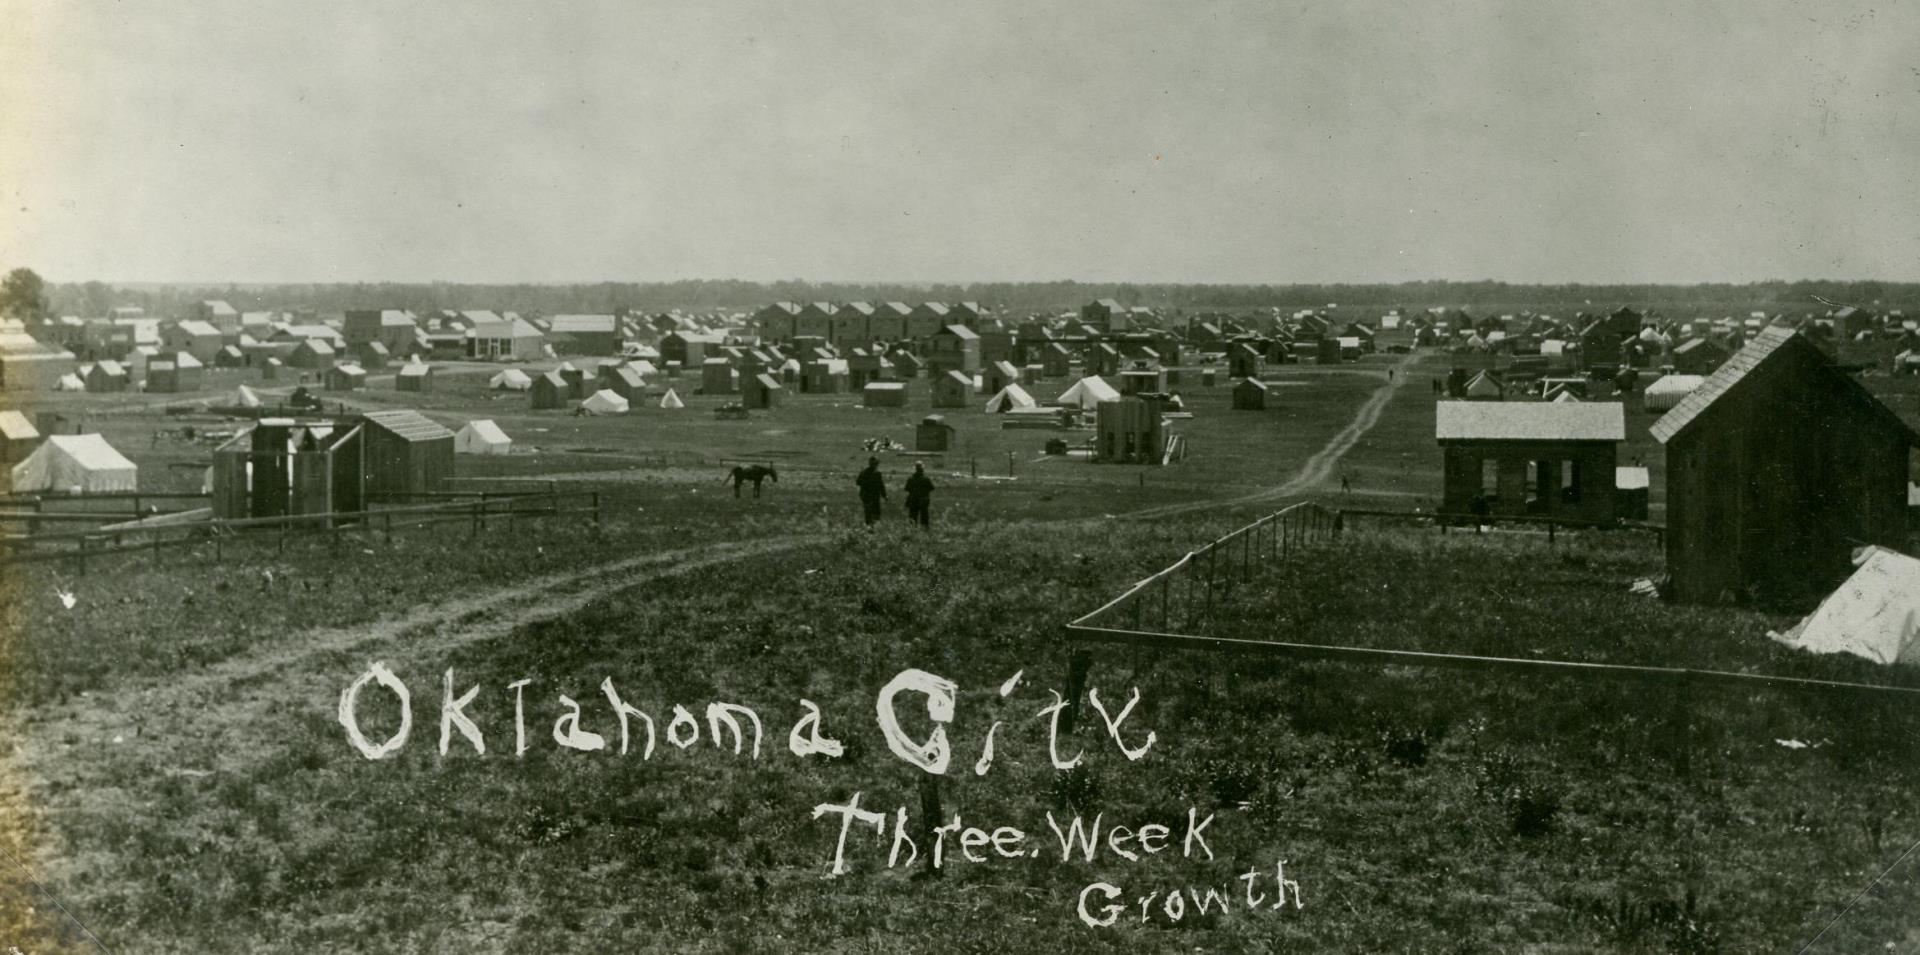 Oklahoma City three weeks after the land opening 1889